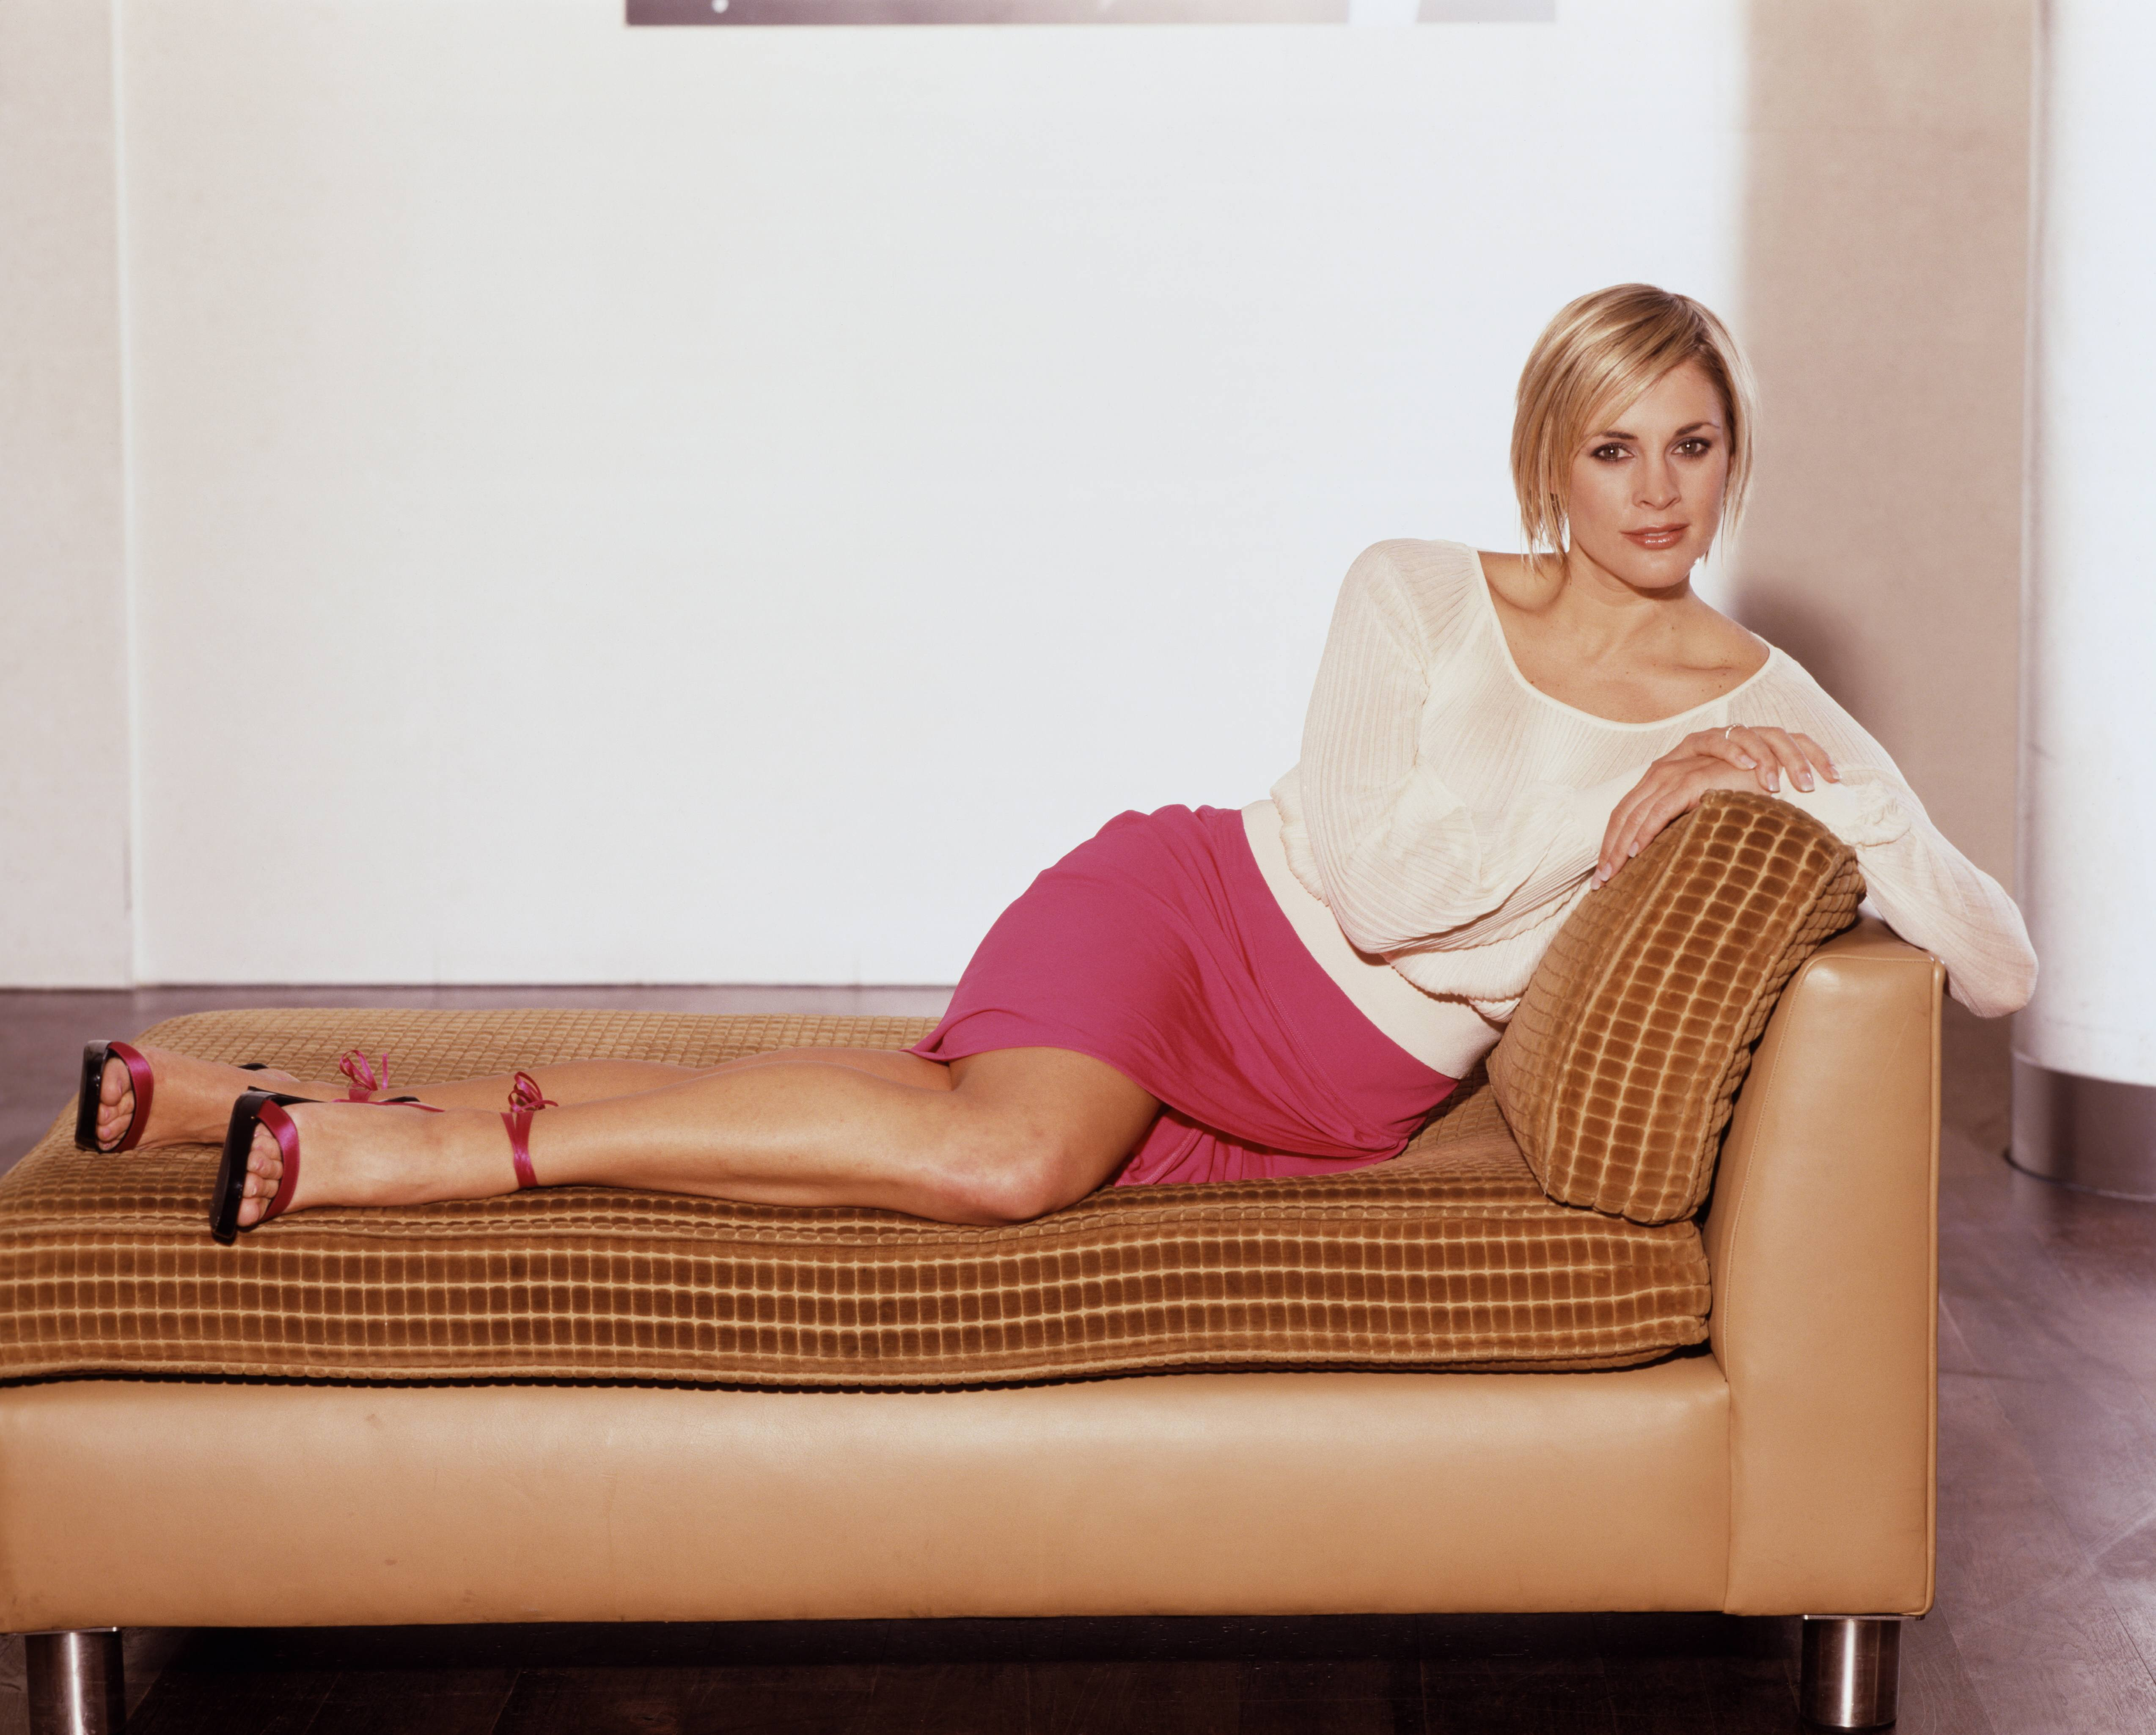 Jenni Falconer Wallpaper For Computer